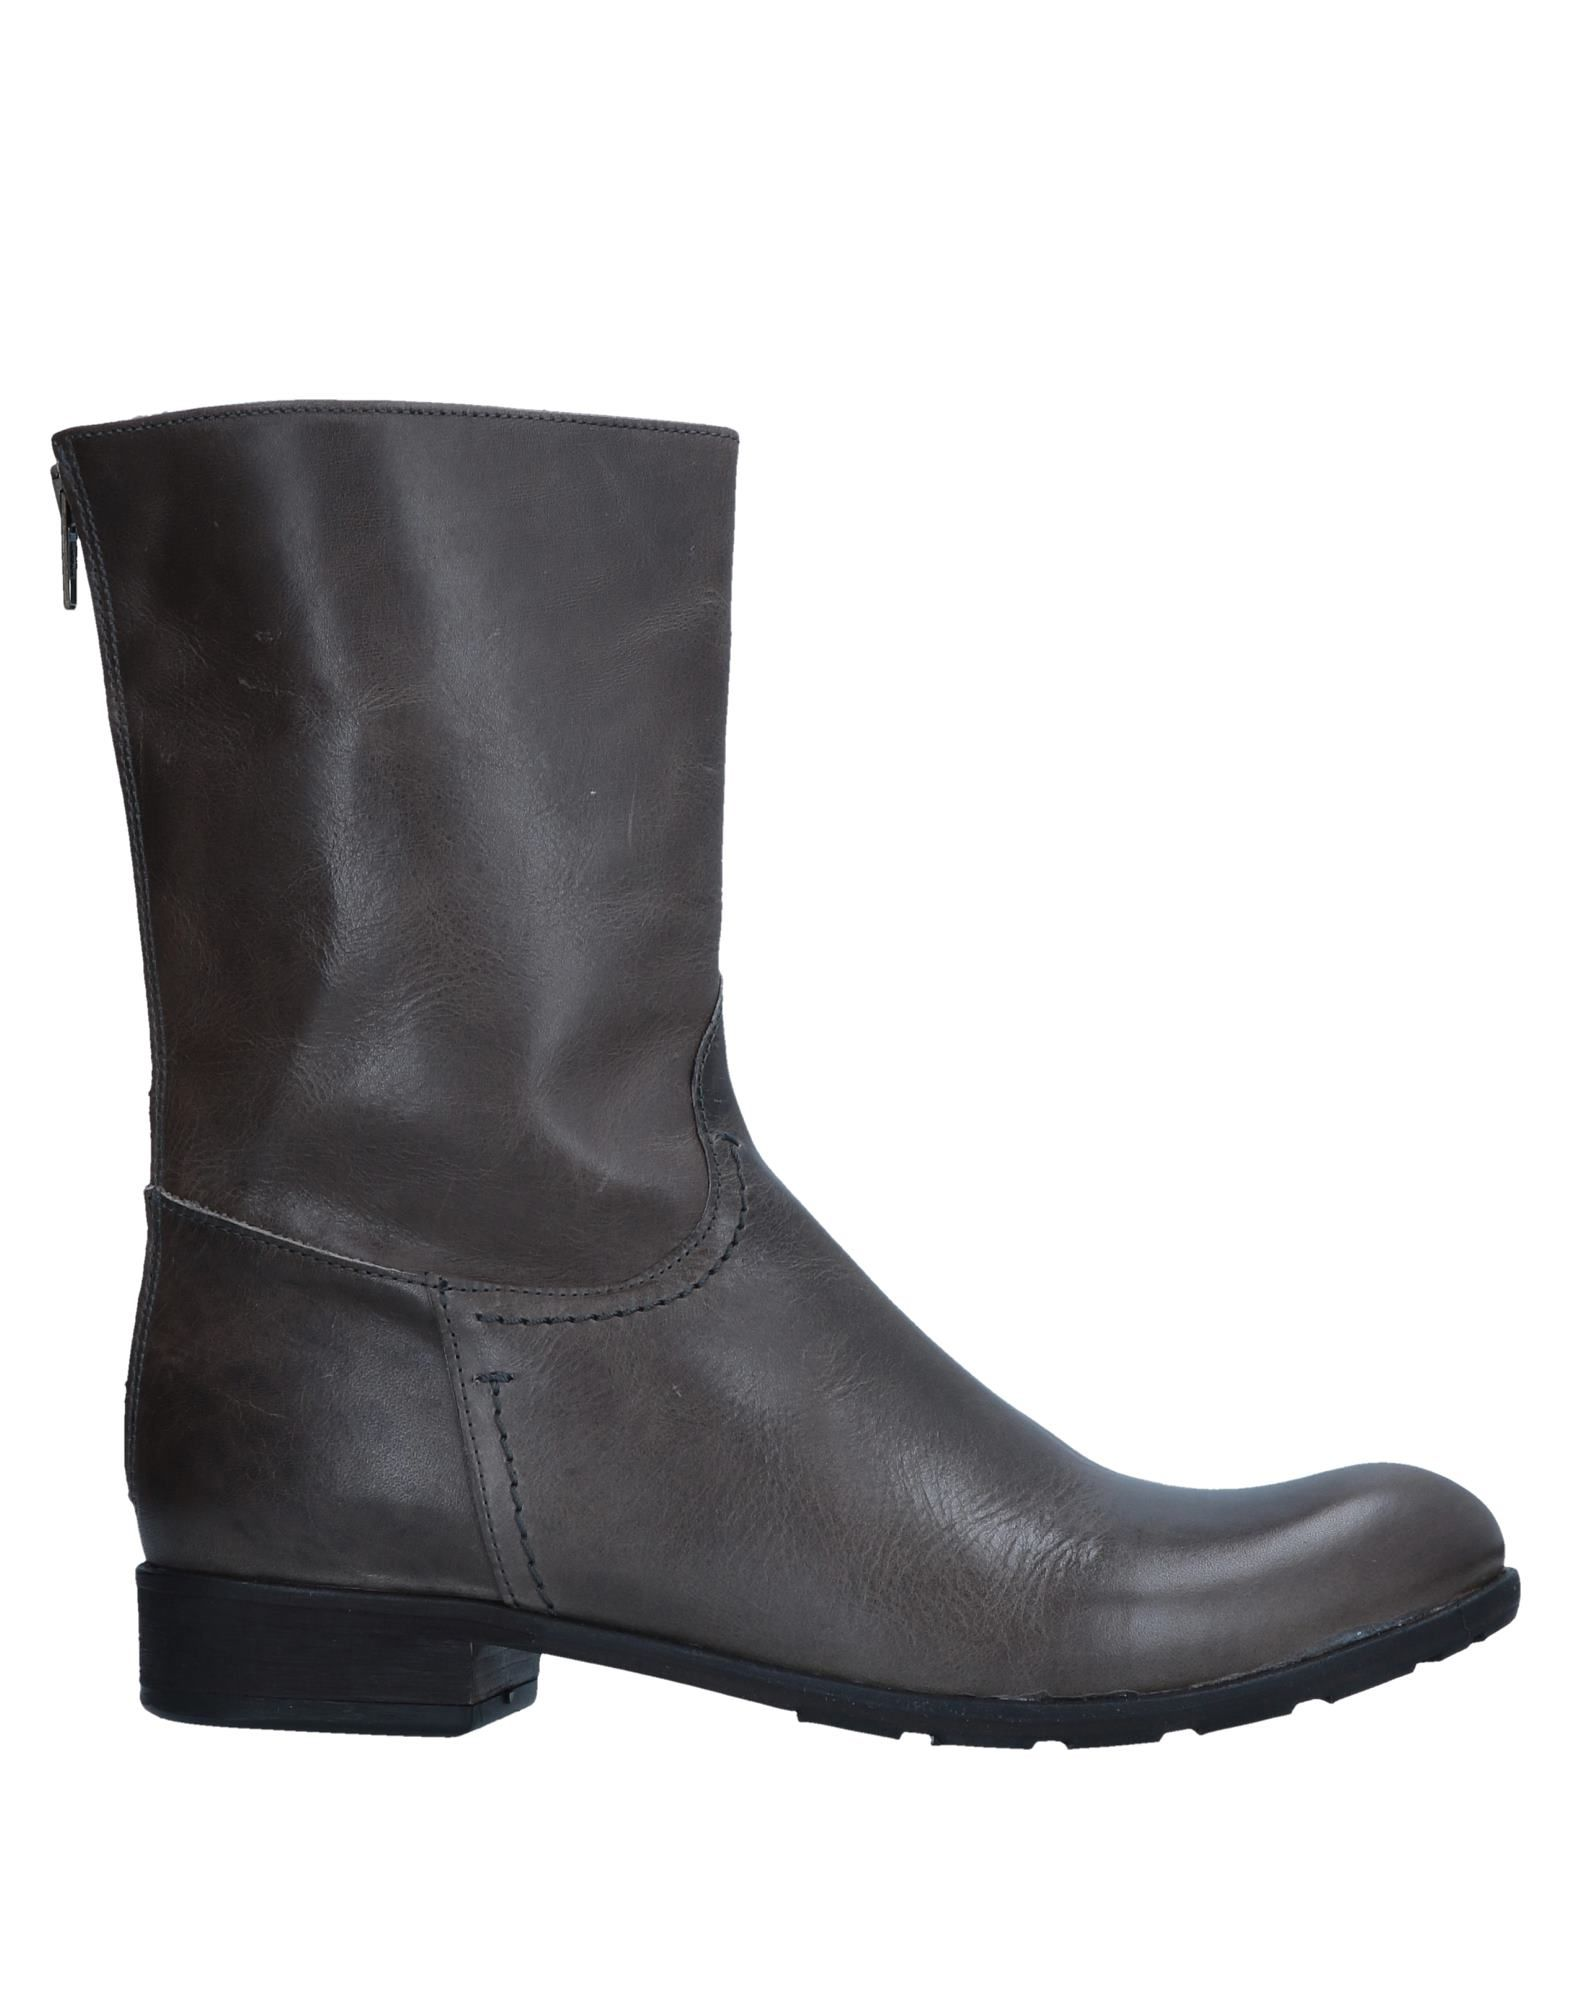 Catarina Martins Ankle Boot - Women Catarina Martins Ankle Australia Boots online on  Australia Ankle - 11546660NW ebafc1